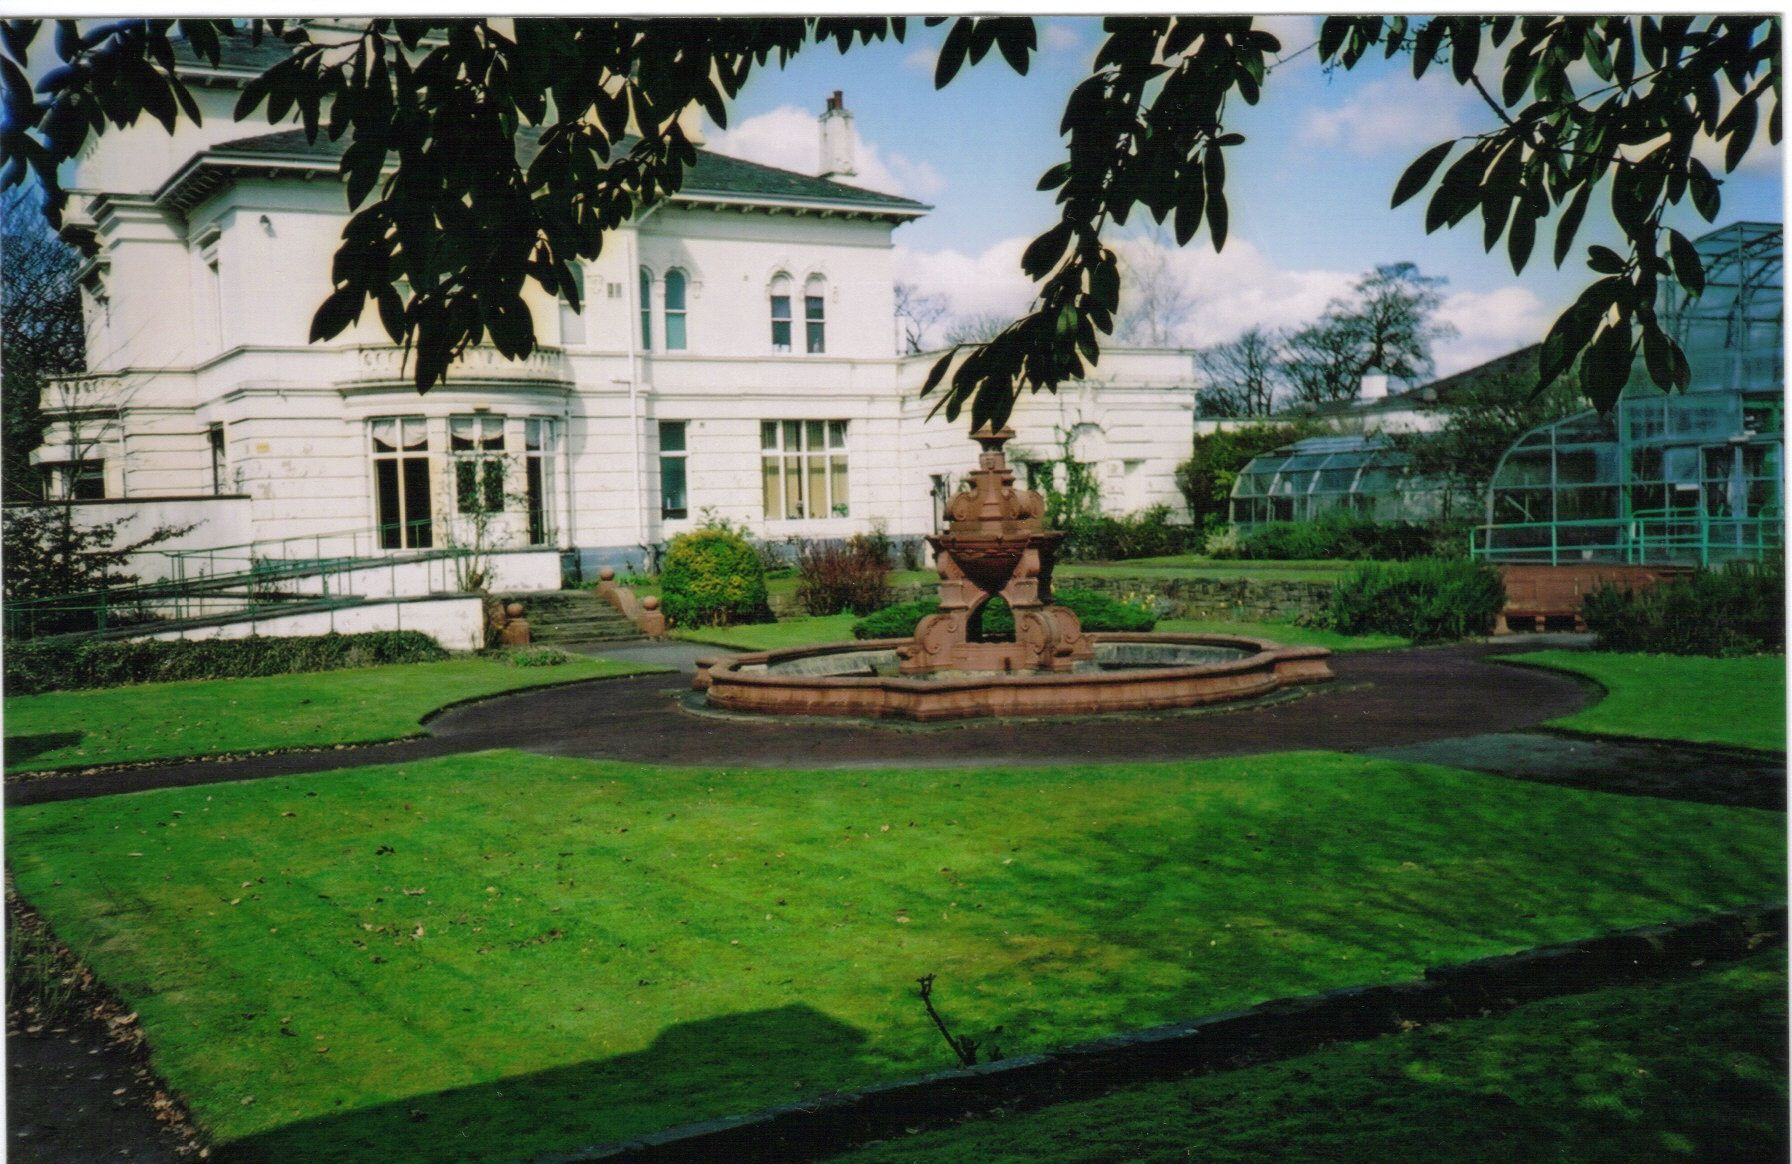 the mansion house victoria park st helens merseyside england